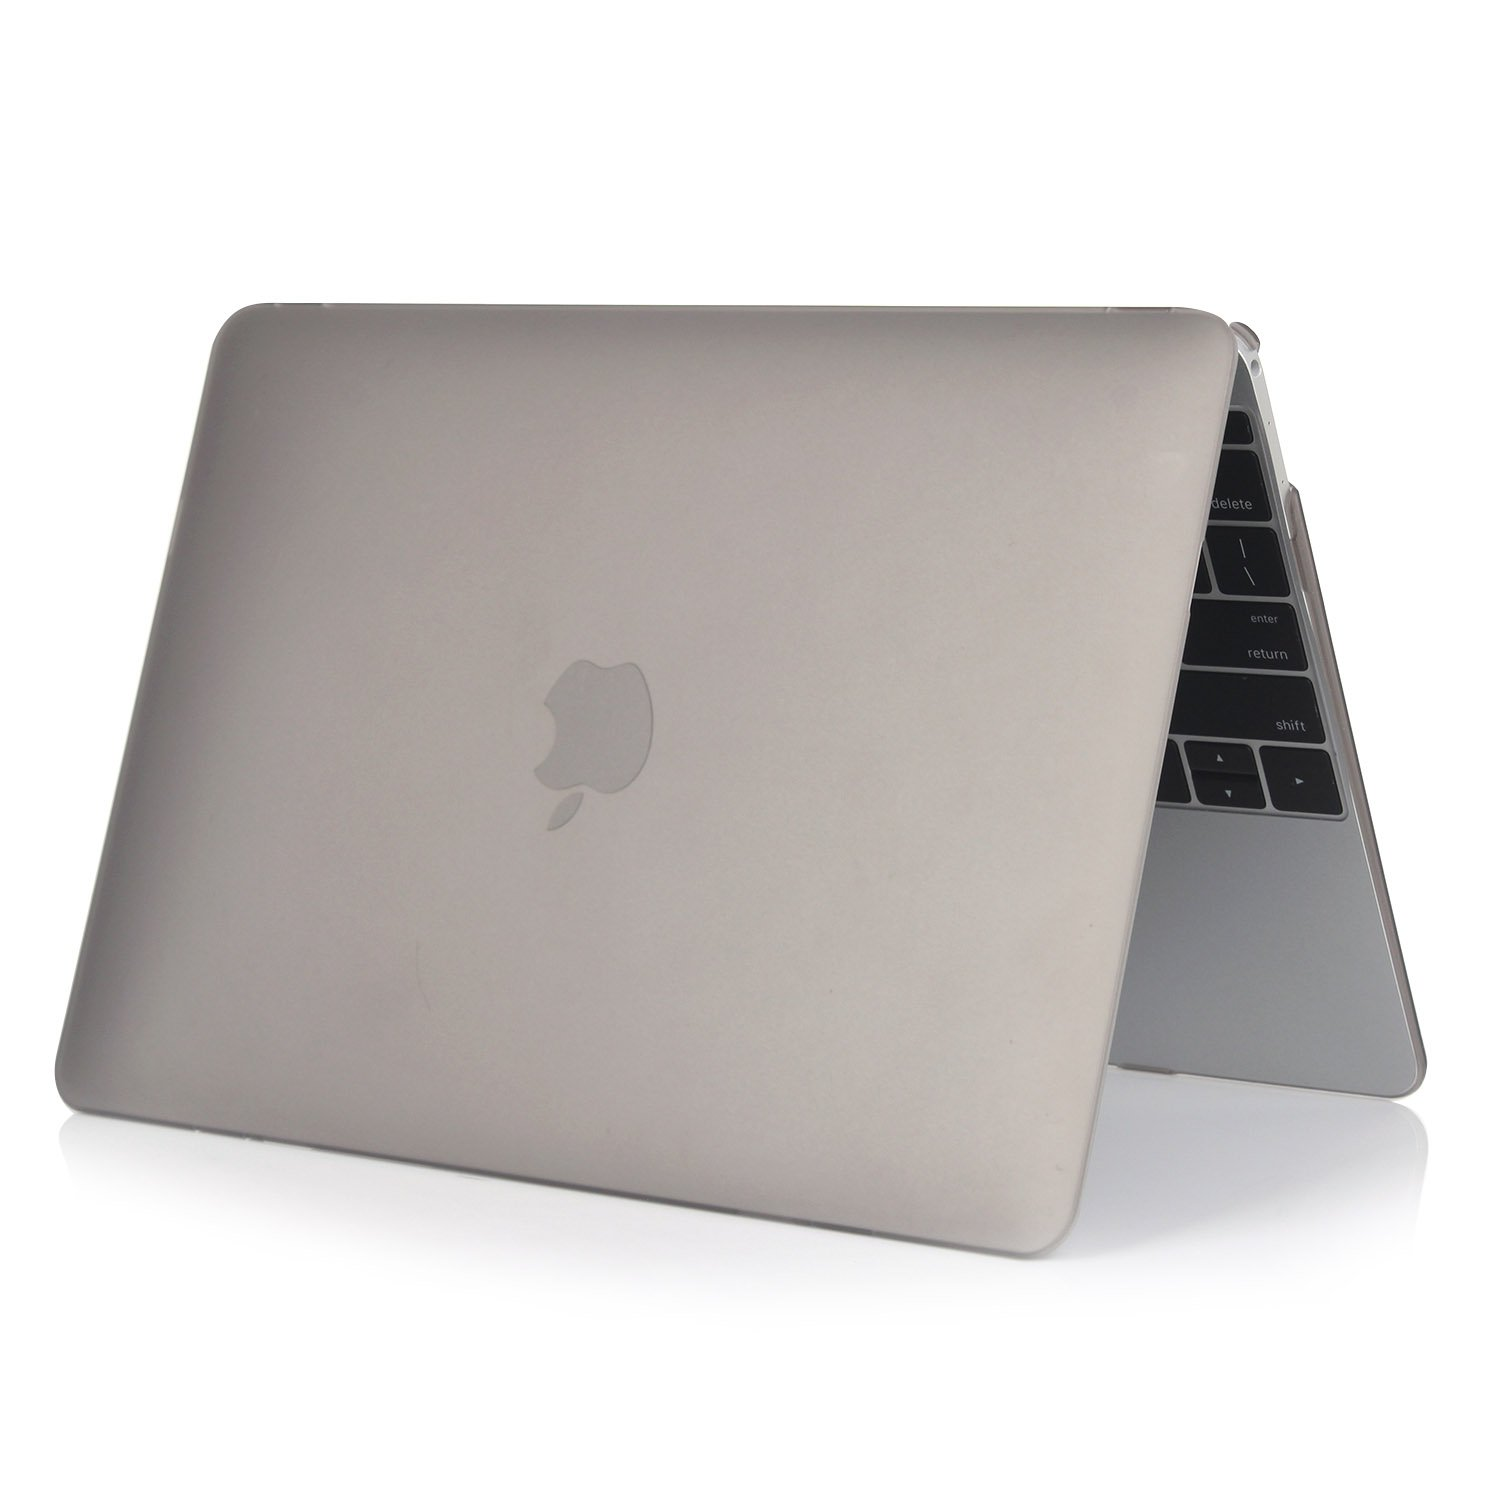 "13.3"" MOSISO TRANSPARENT BLACK Matte Case for MacBook Air Laptop 9 COLORS FAST FREE SHIPPING USA"